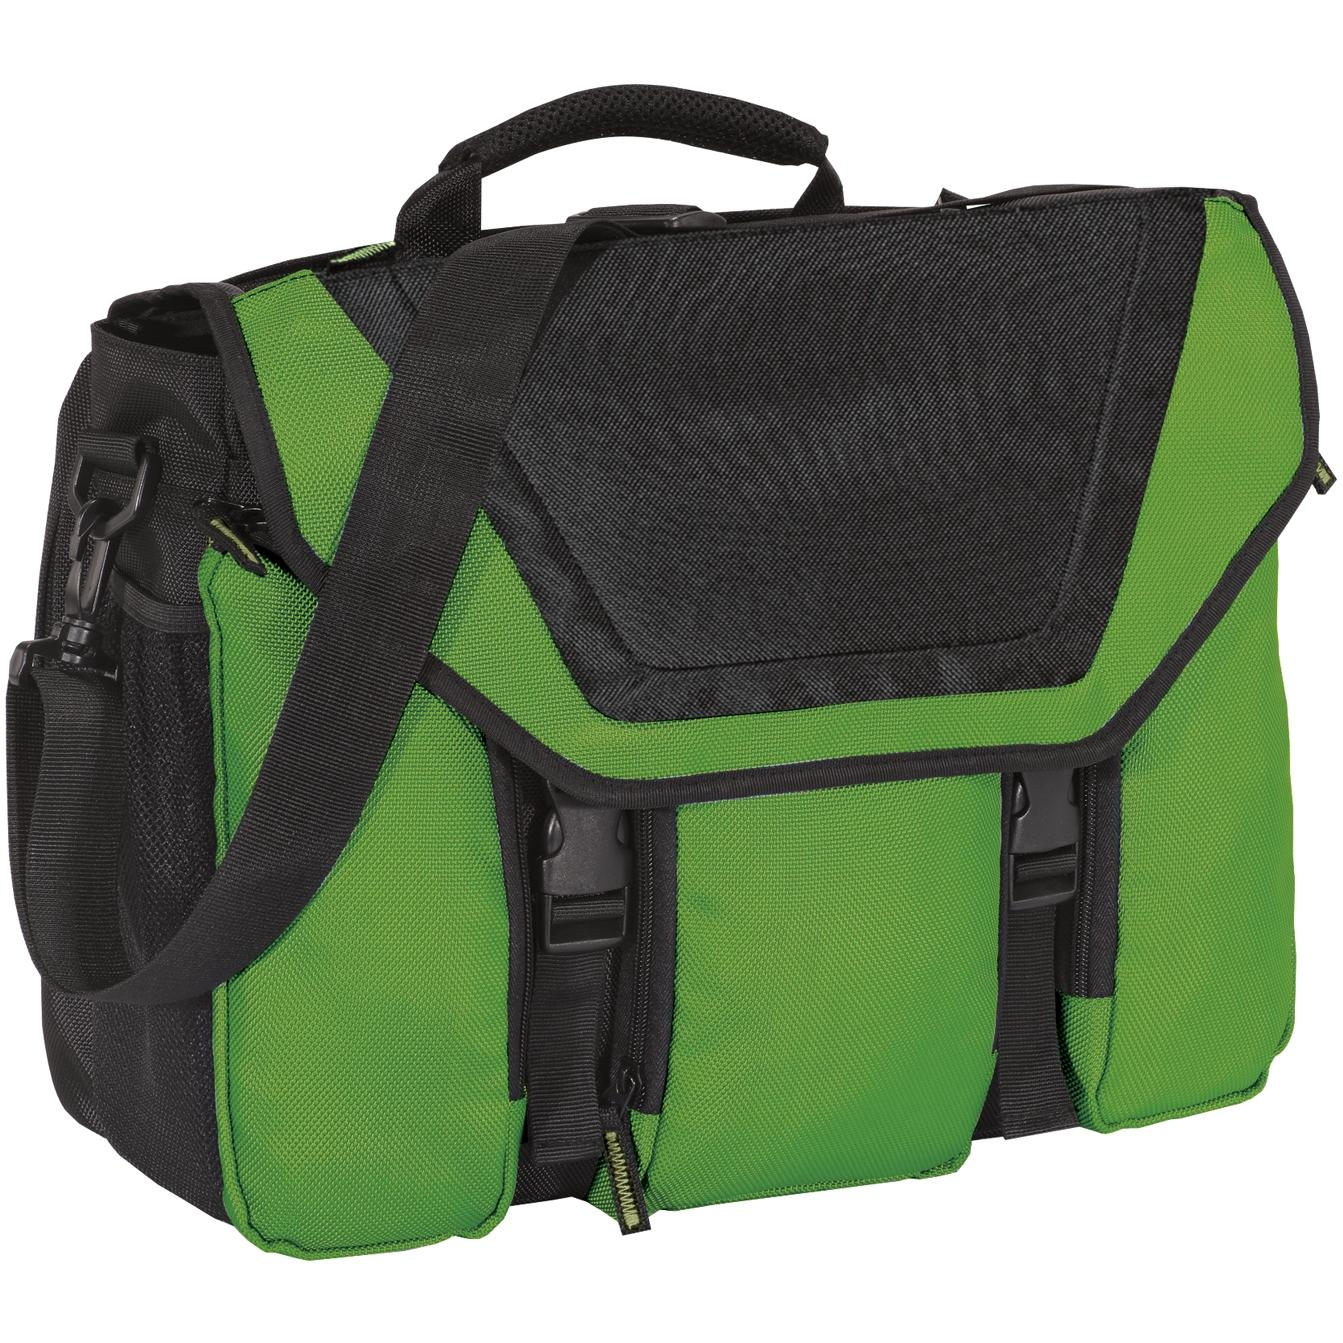 Port Authority Messenger Briefcase - Cactus/Black